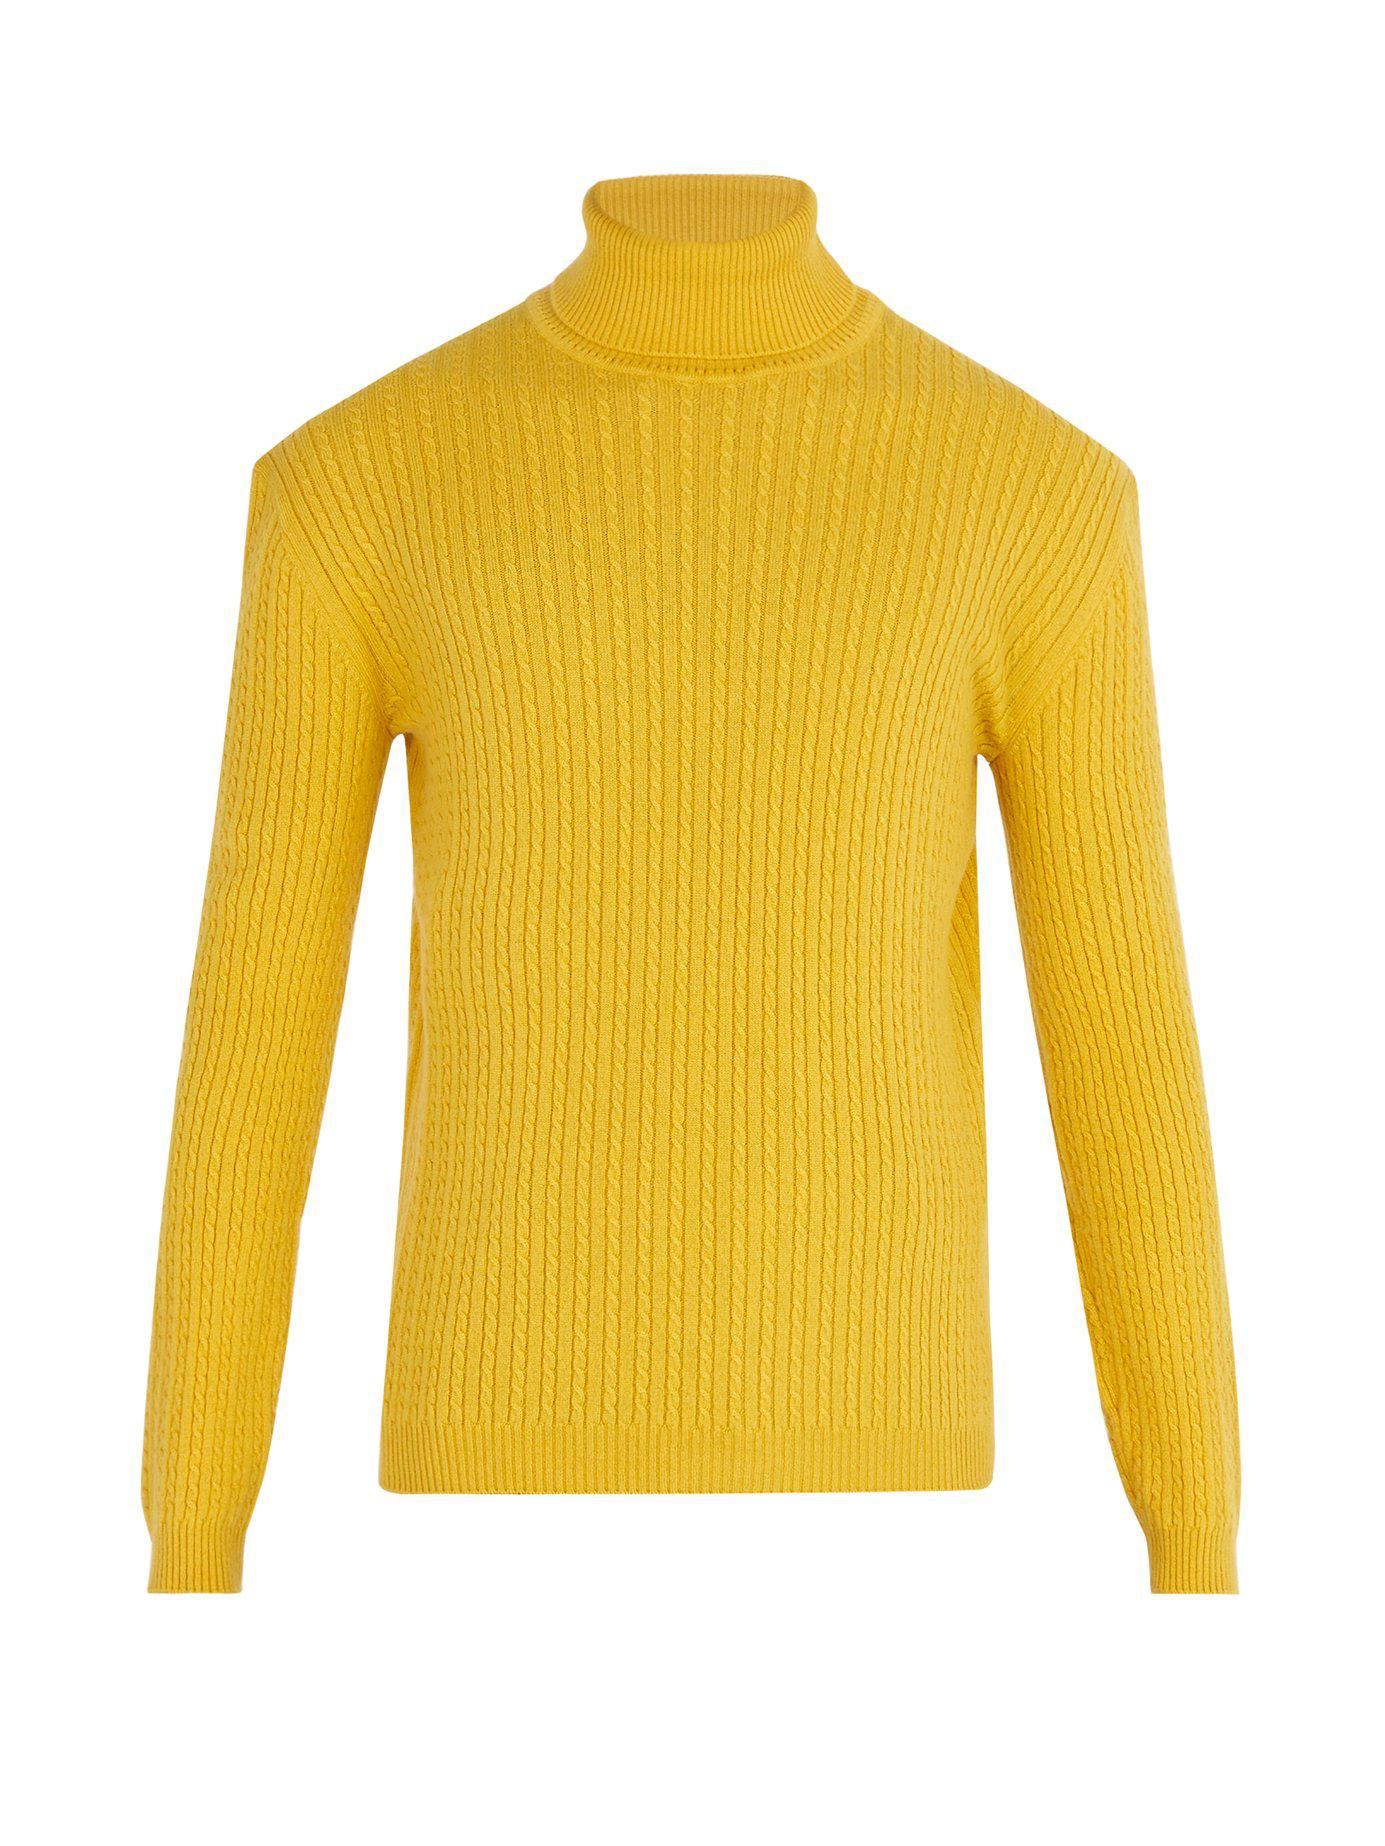 098f53af1 Gucci Cable-knit Cashmere Roll-neck Sweater in Yellow for Men - Lyst